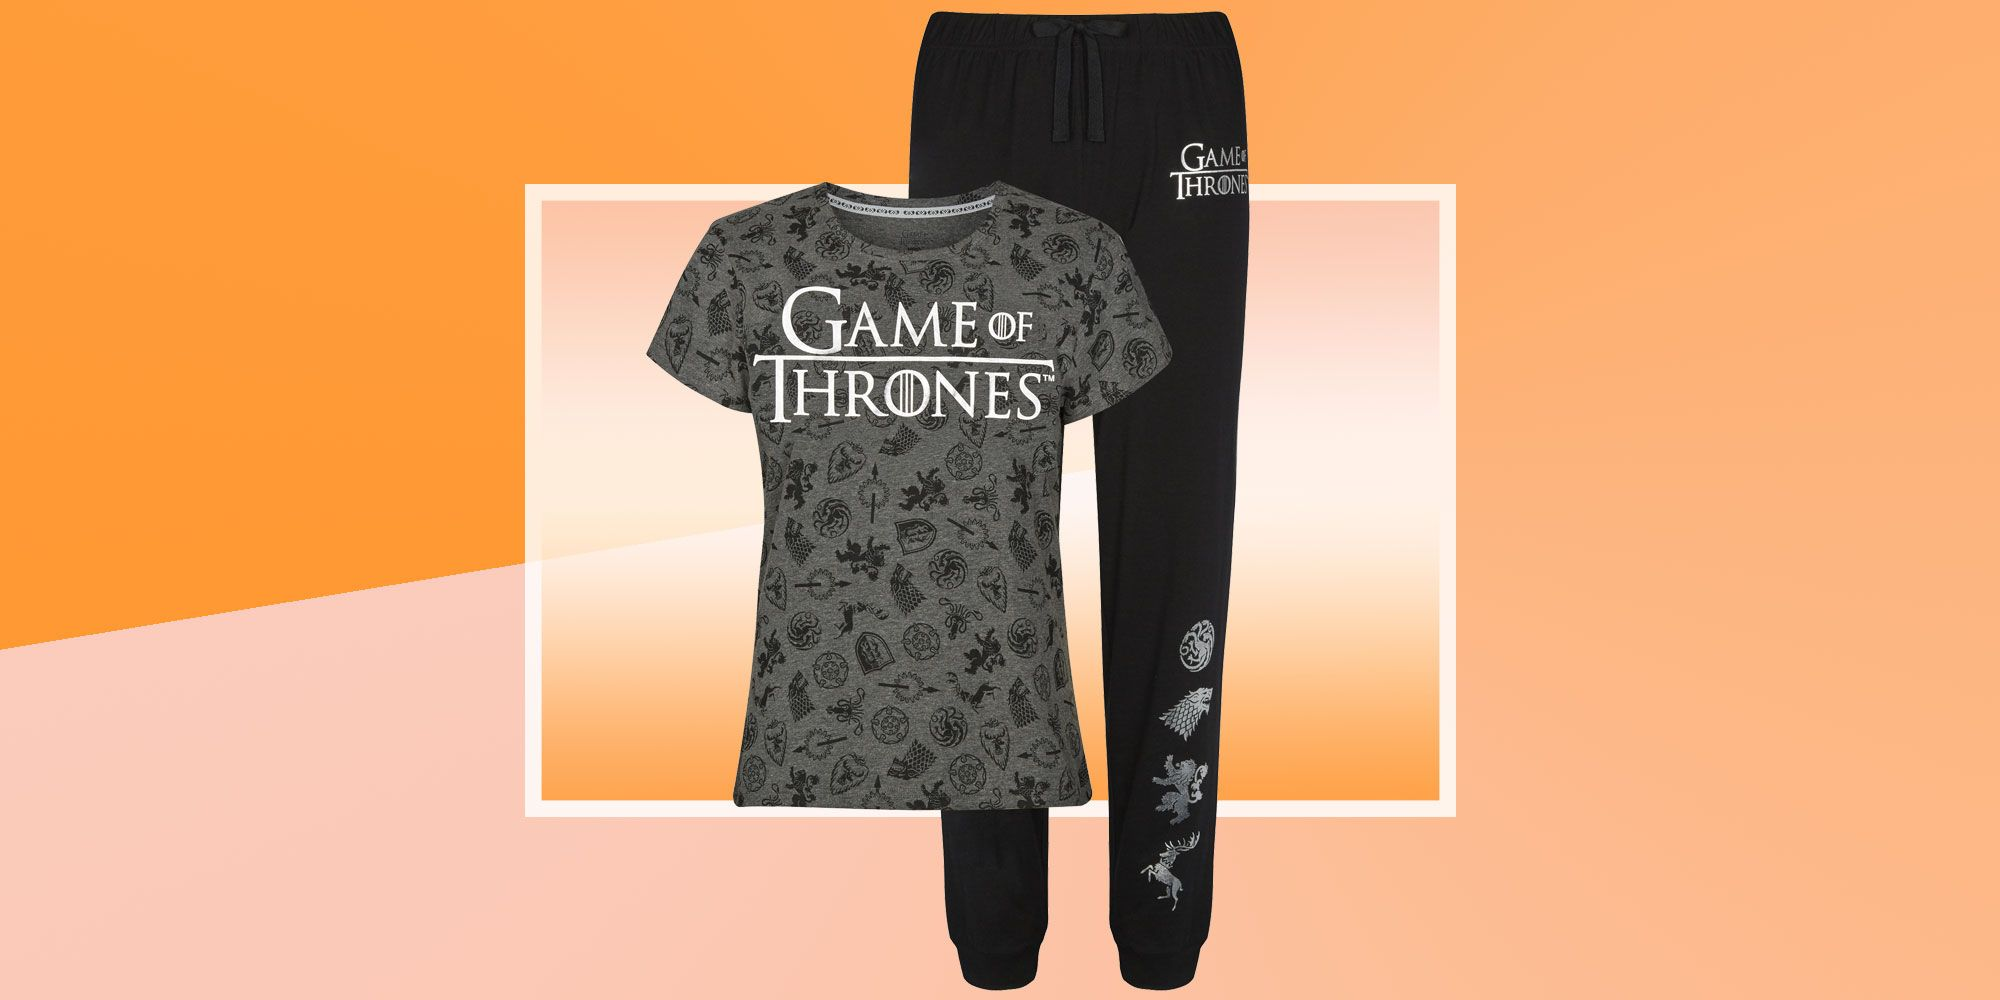 Primark Has A New Game Of Thrones Pj Collection